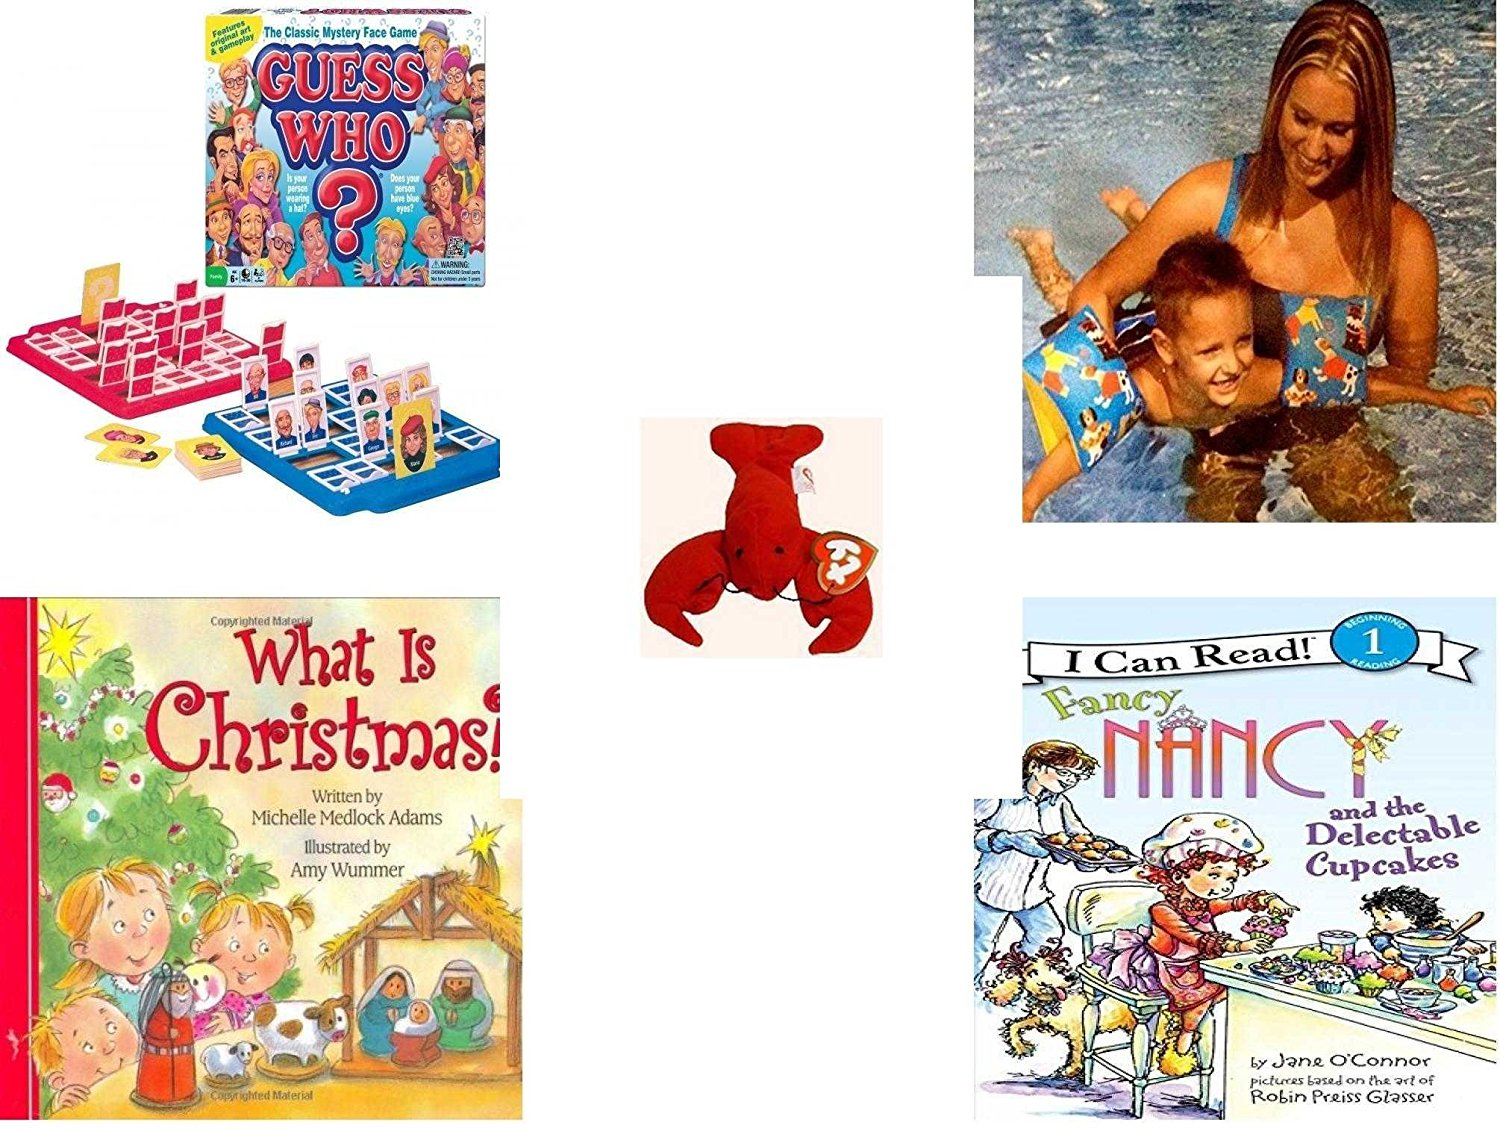 Children's Gift Bundle - Ages 3-5 [5 Piece] - Guess Who? Board Game - Arm Bands for Swimming Pug Design Toy - Ty Teenie Beanie Babies - Pinchers the Lobster - What Is Christmas? Board Book - Fancy